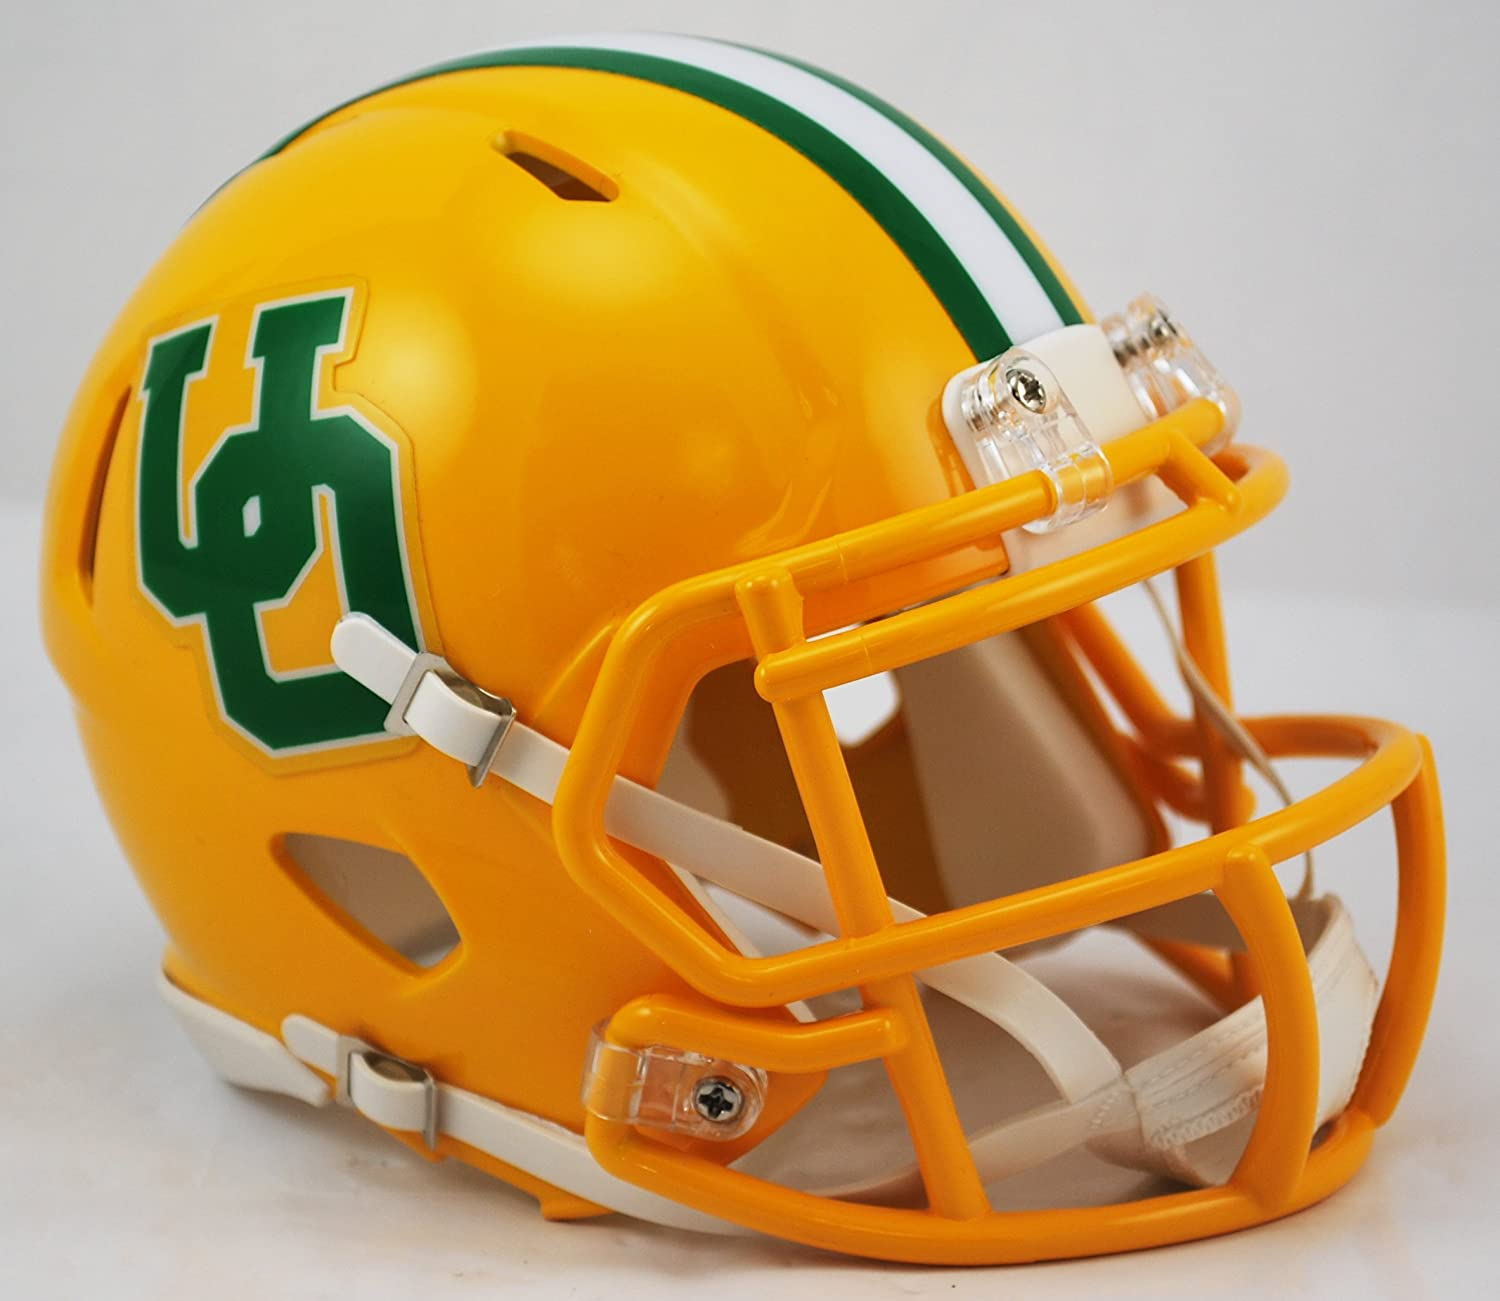 Oregon Ducks Riddell Speed Sales of SALE items from new works Mini Replica Limited time trial price Football Helme Throwback